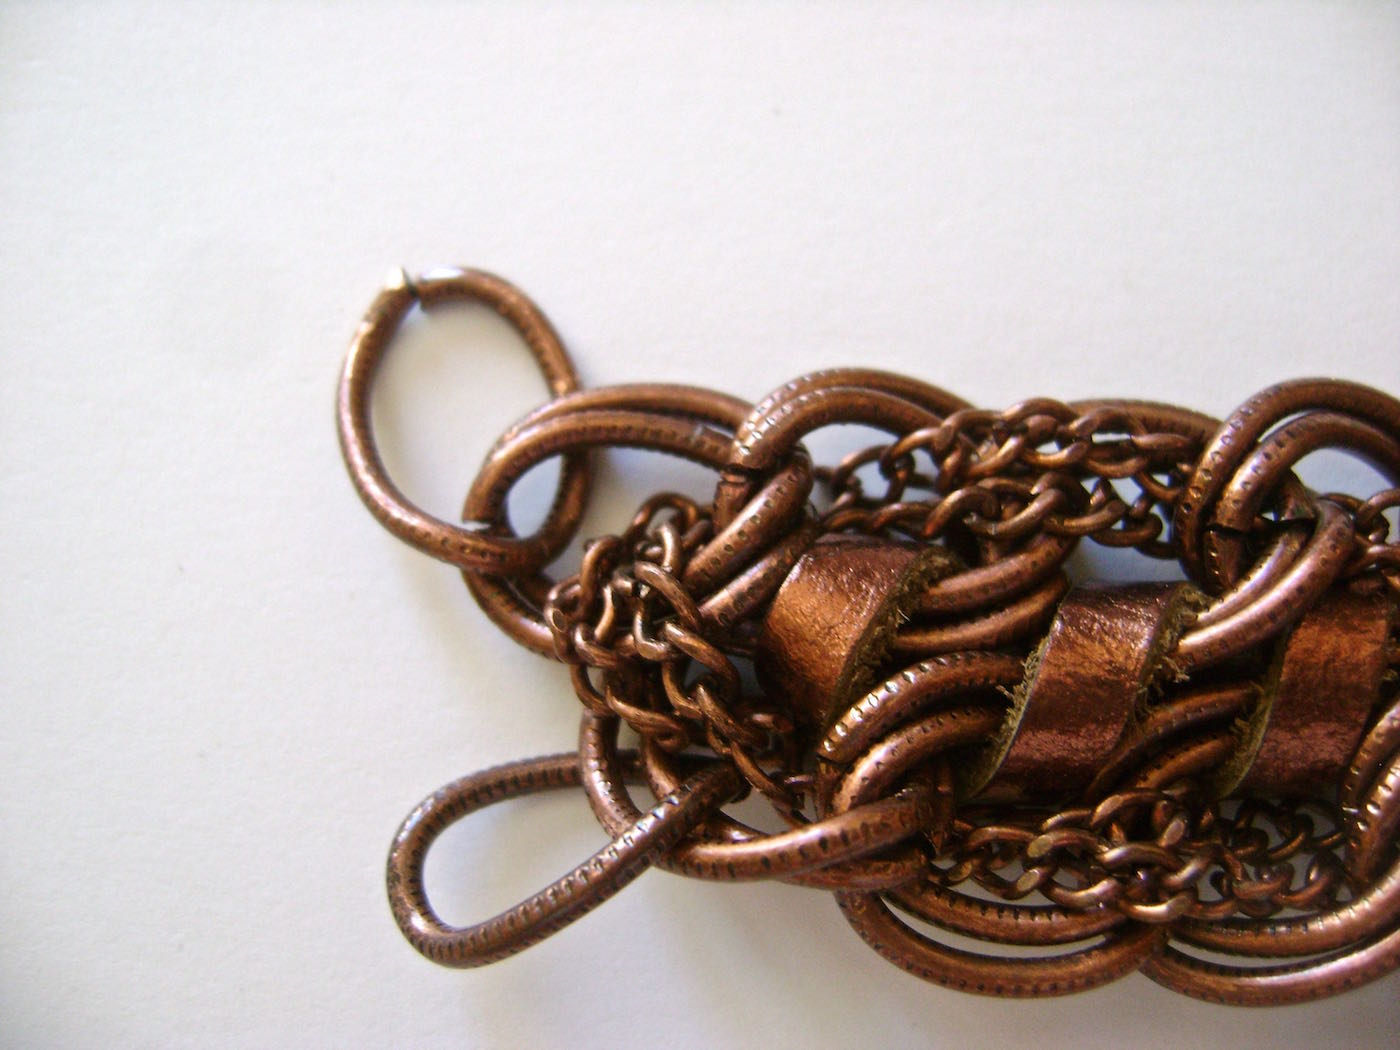 step 9 - Repeat with the remaining two chain ends. Remove the excess chain. The connected chains should not be so tight that it prevents the bracelet from laying flat. Replace the links you removed in step five.